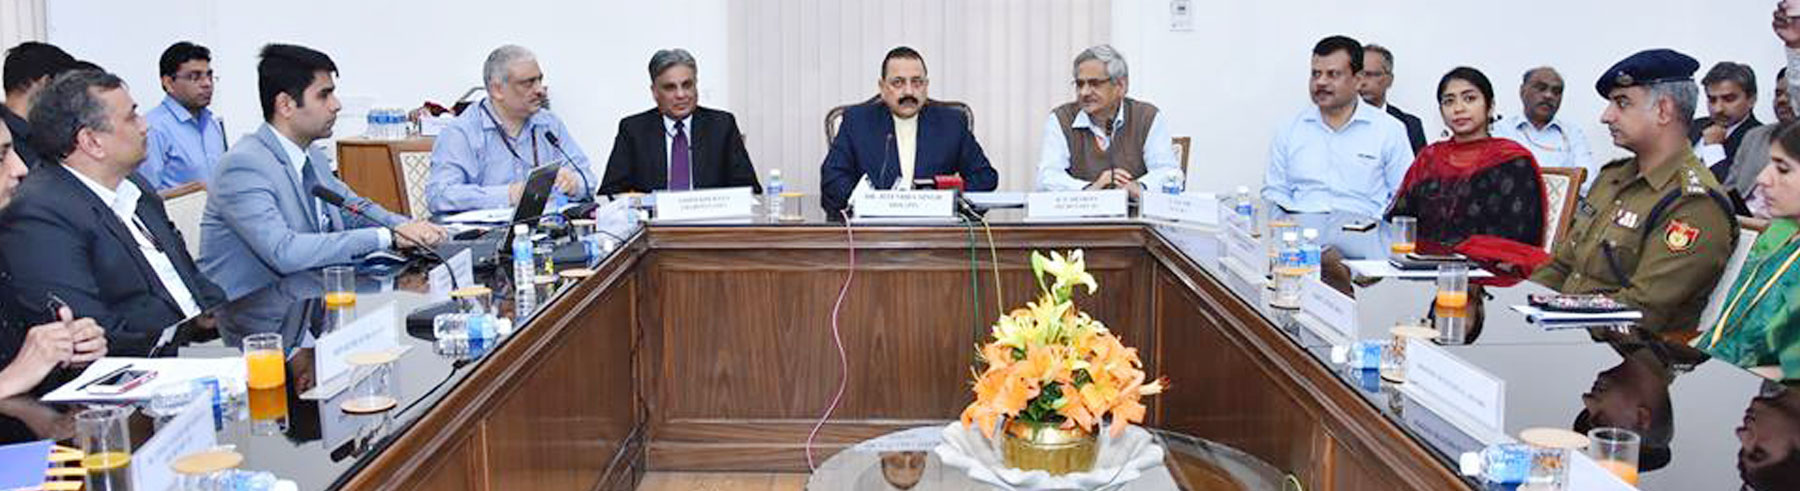 Dr Jitendra Singh, Honorable MoS (PP) conferred awards to Ministries/ Departments for their best work on Online RTI Portal